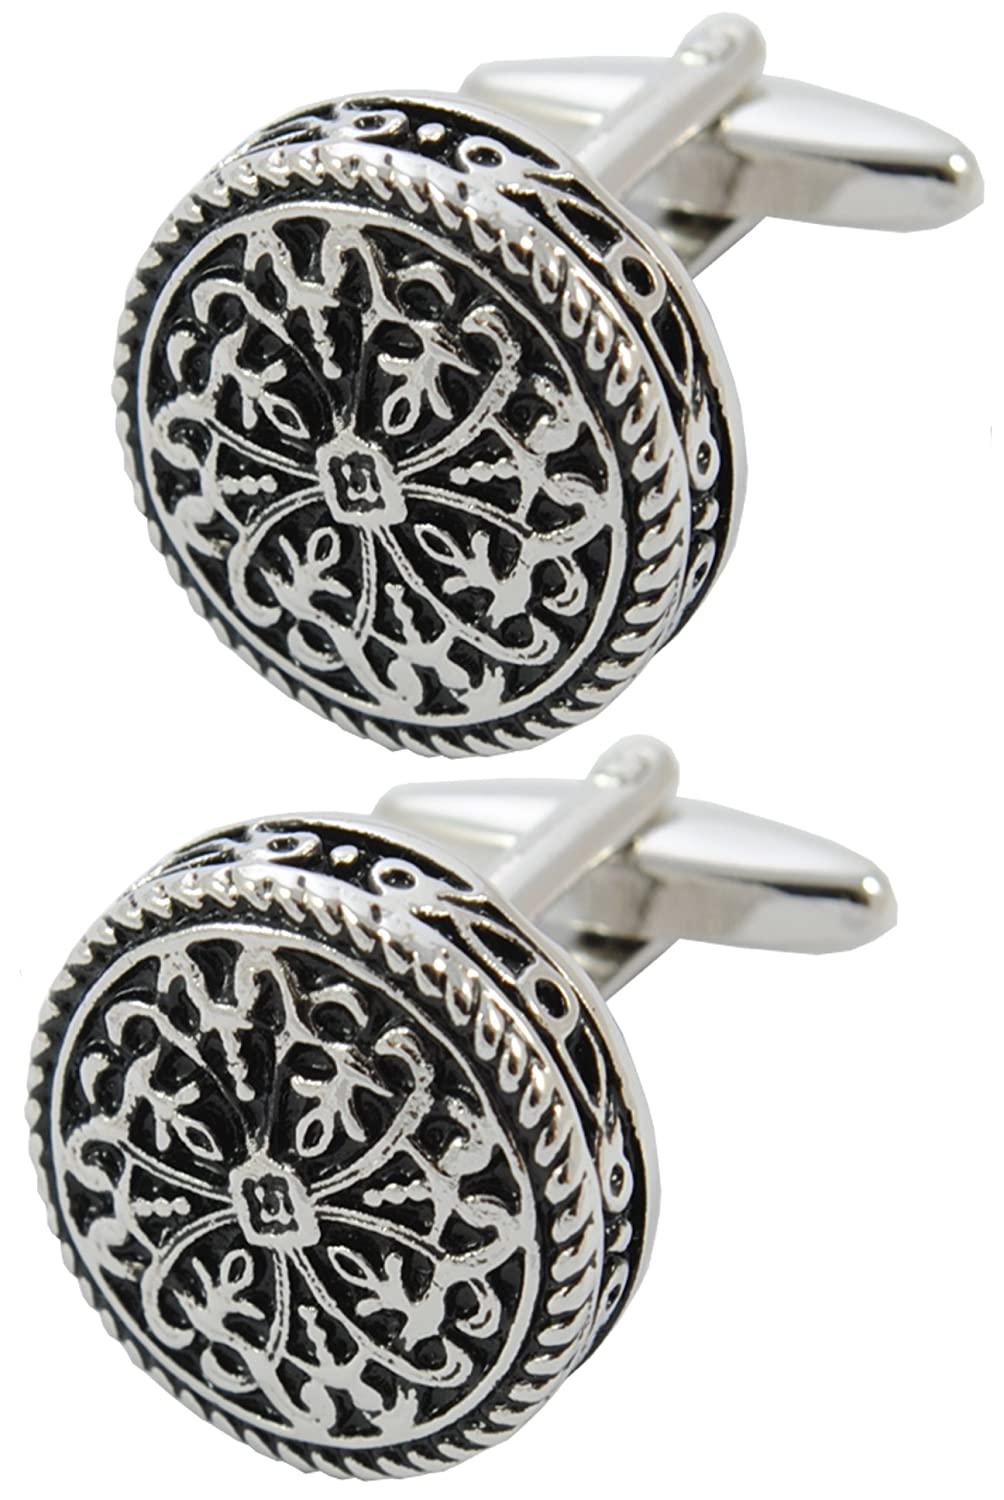 COLLAR AND CUFFS LONDON - PREMIUM Cufflinks WITH GIFT BOX Antique-Style Celtic Design - Brass - Round Cross Design - 20mm Diameter - Silver and Black Colours COLLARANDCUFFSLONDON40184